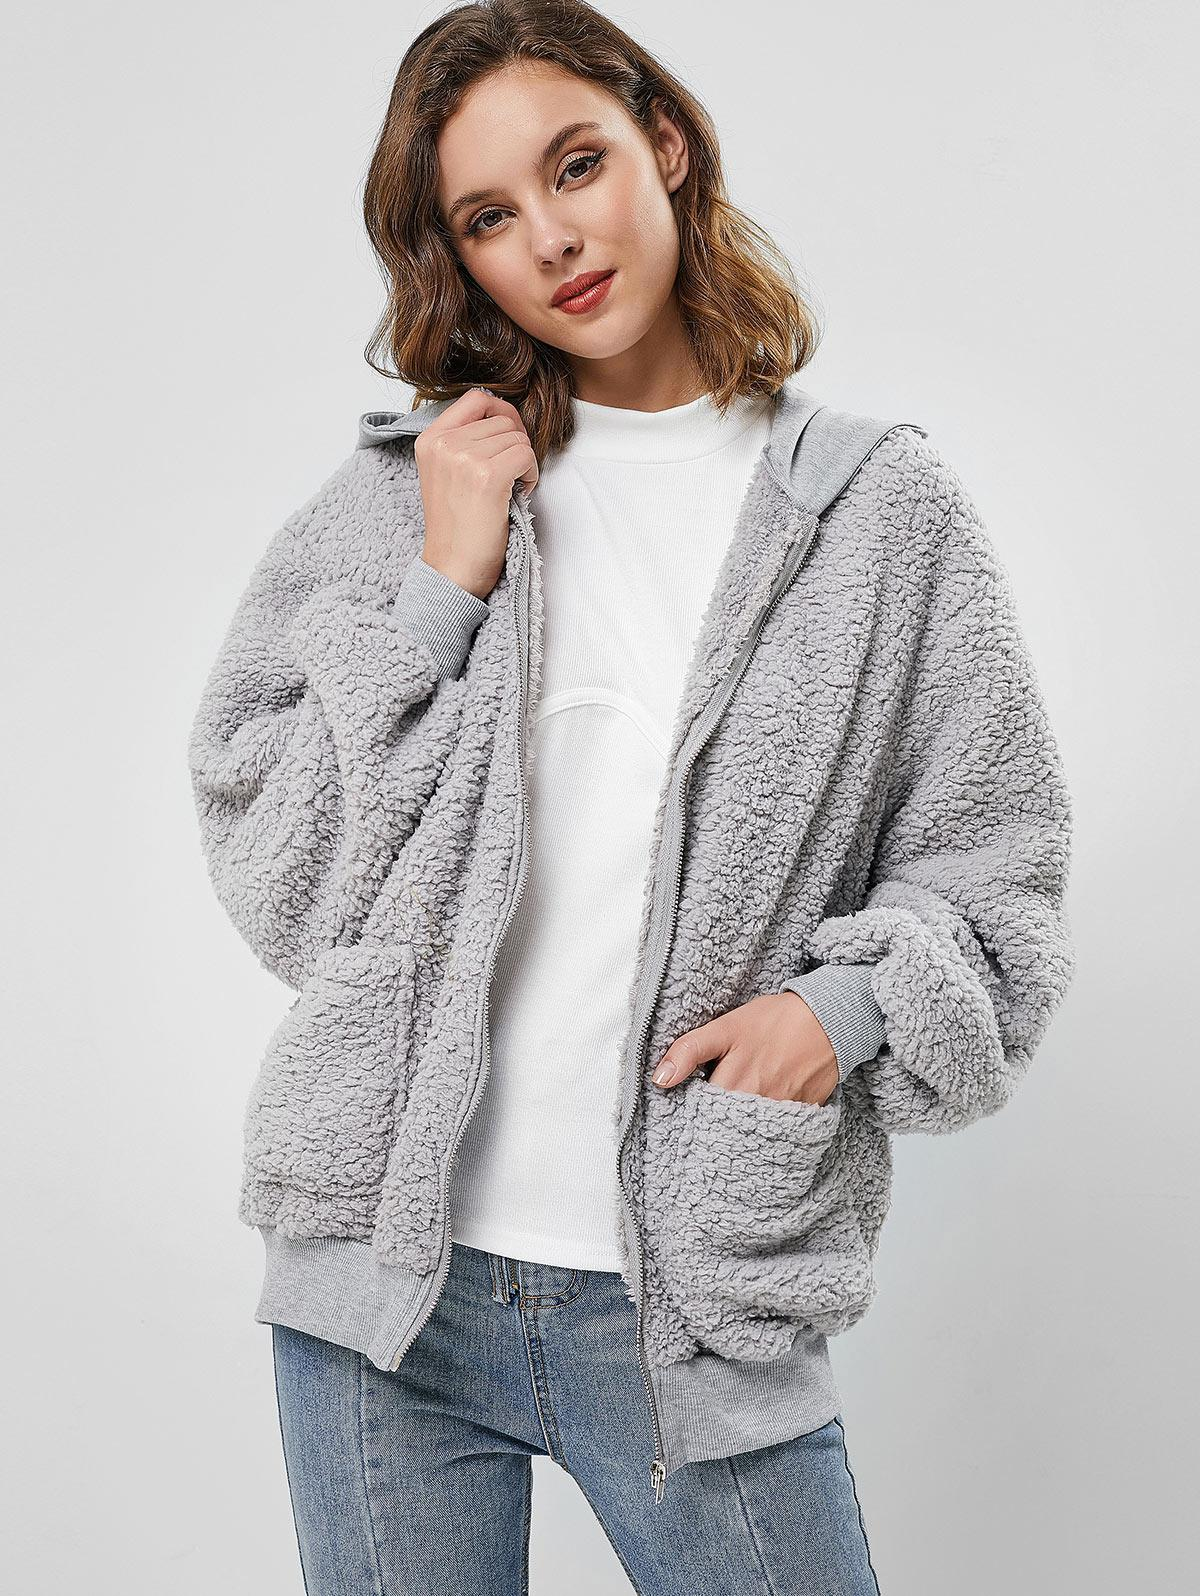 ZAFUL Hooded Fluffy Zip Up Teddy Coat